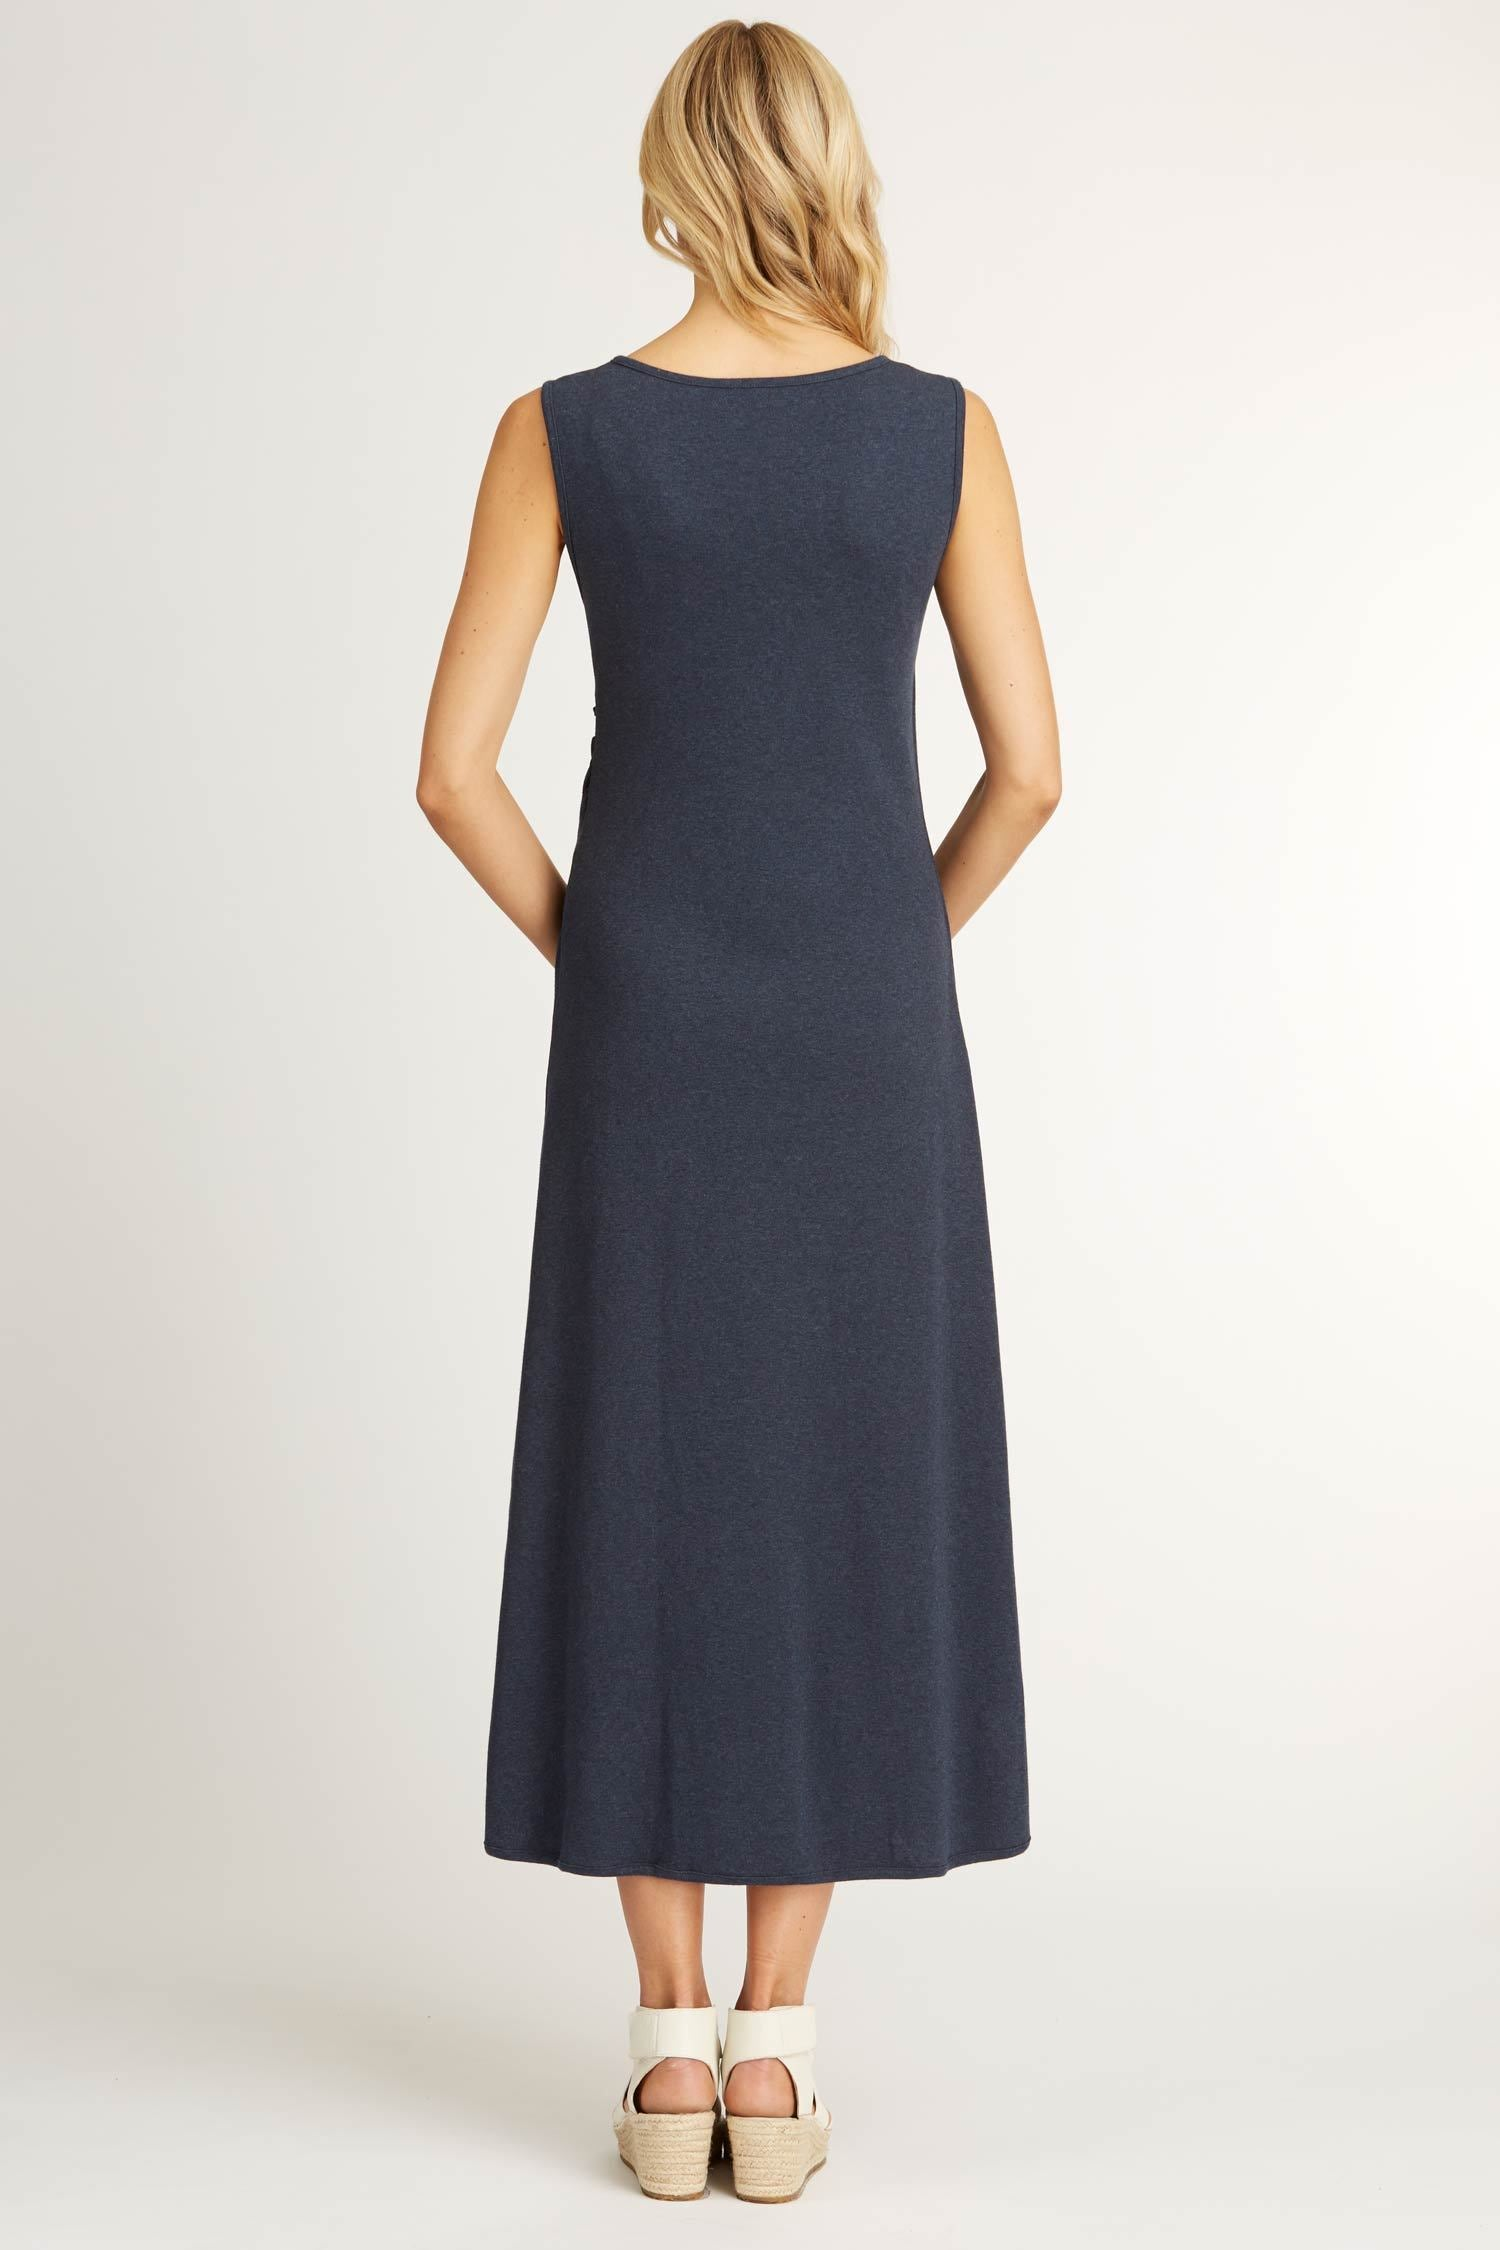 Womens Boatneck Maxi Dress in Navy Blue | Organic Cotton Clothing